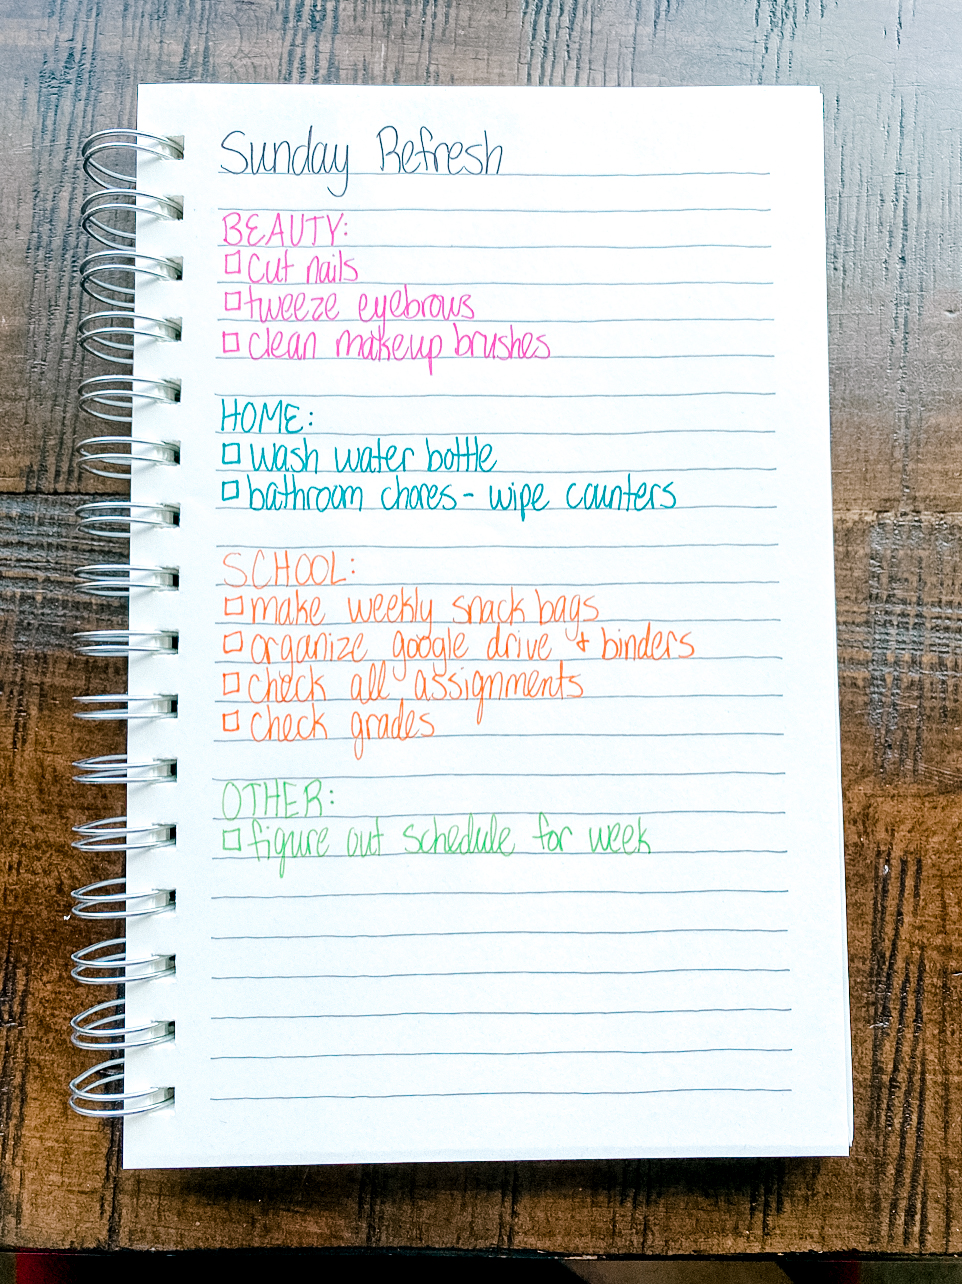 Photo of a notebook with a handwritten to-do list with color-coded categories.